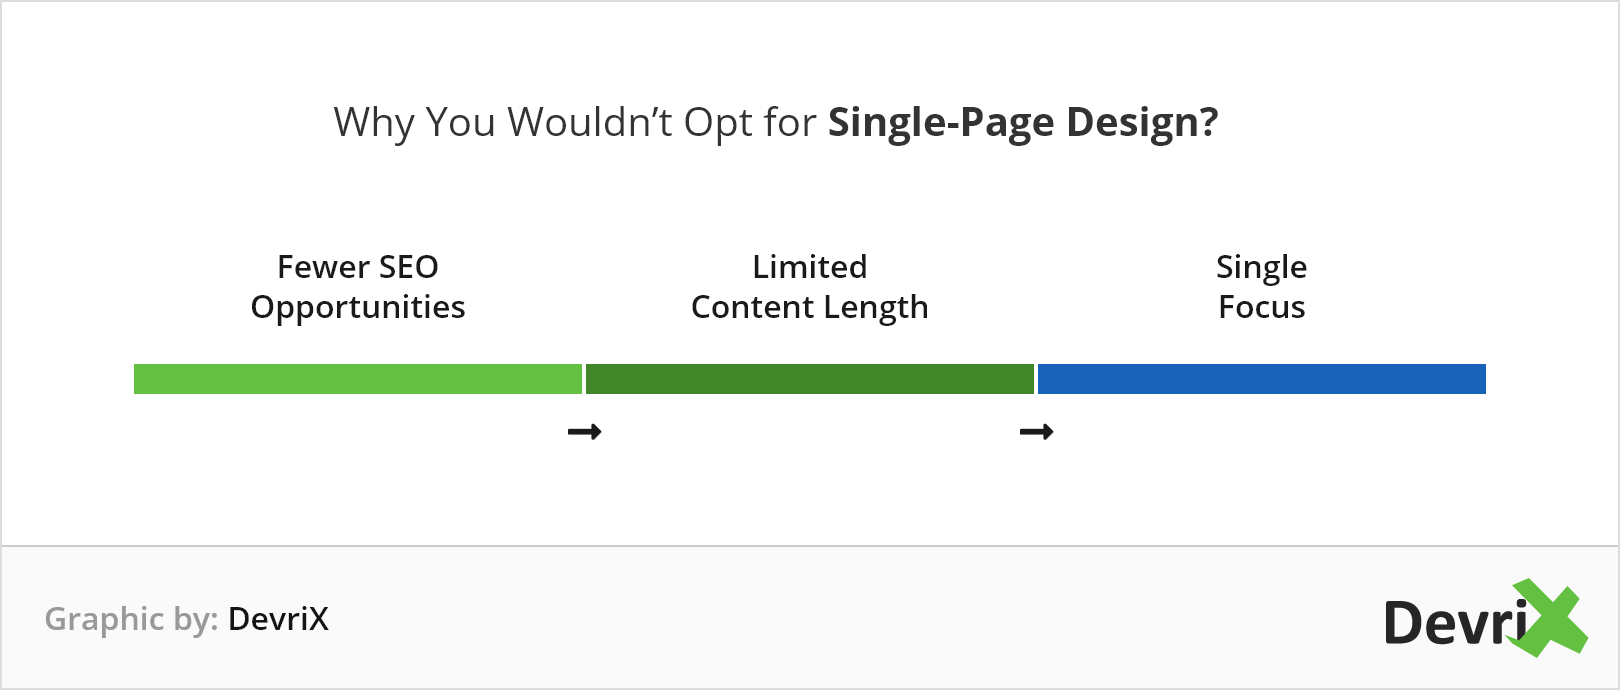 Why You Wouldn't Opt for Single-Page Design Graphic